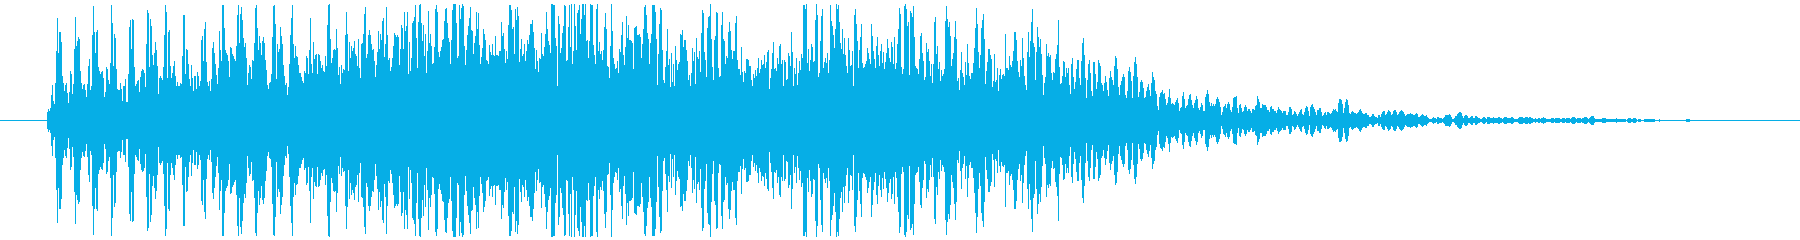 Wild and powerful Logo's reproduced waveform